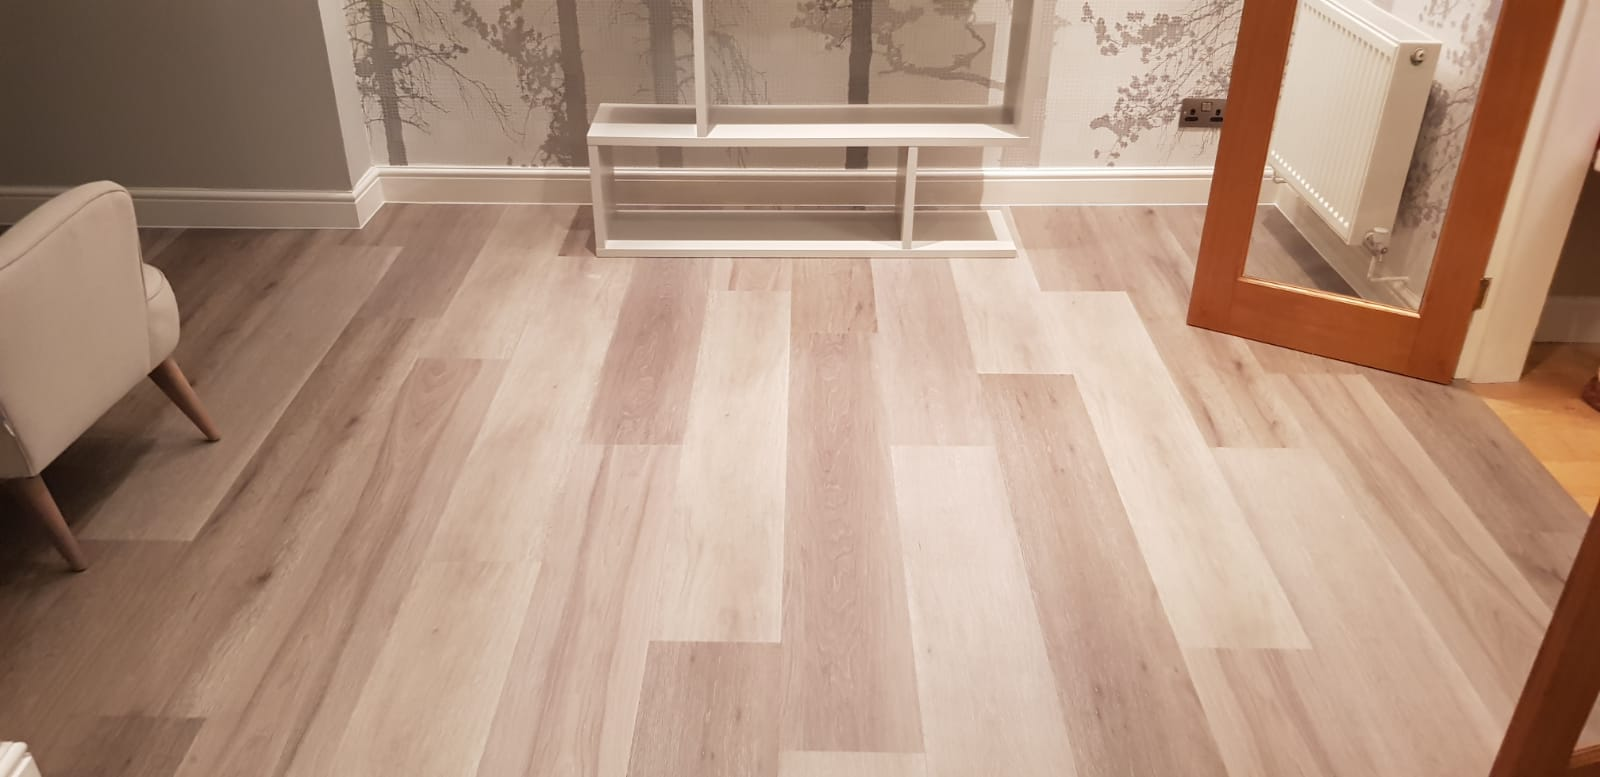 Wood Flooring in Borough 3